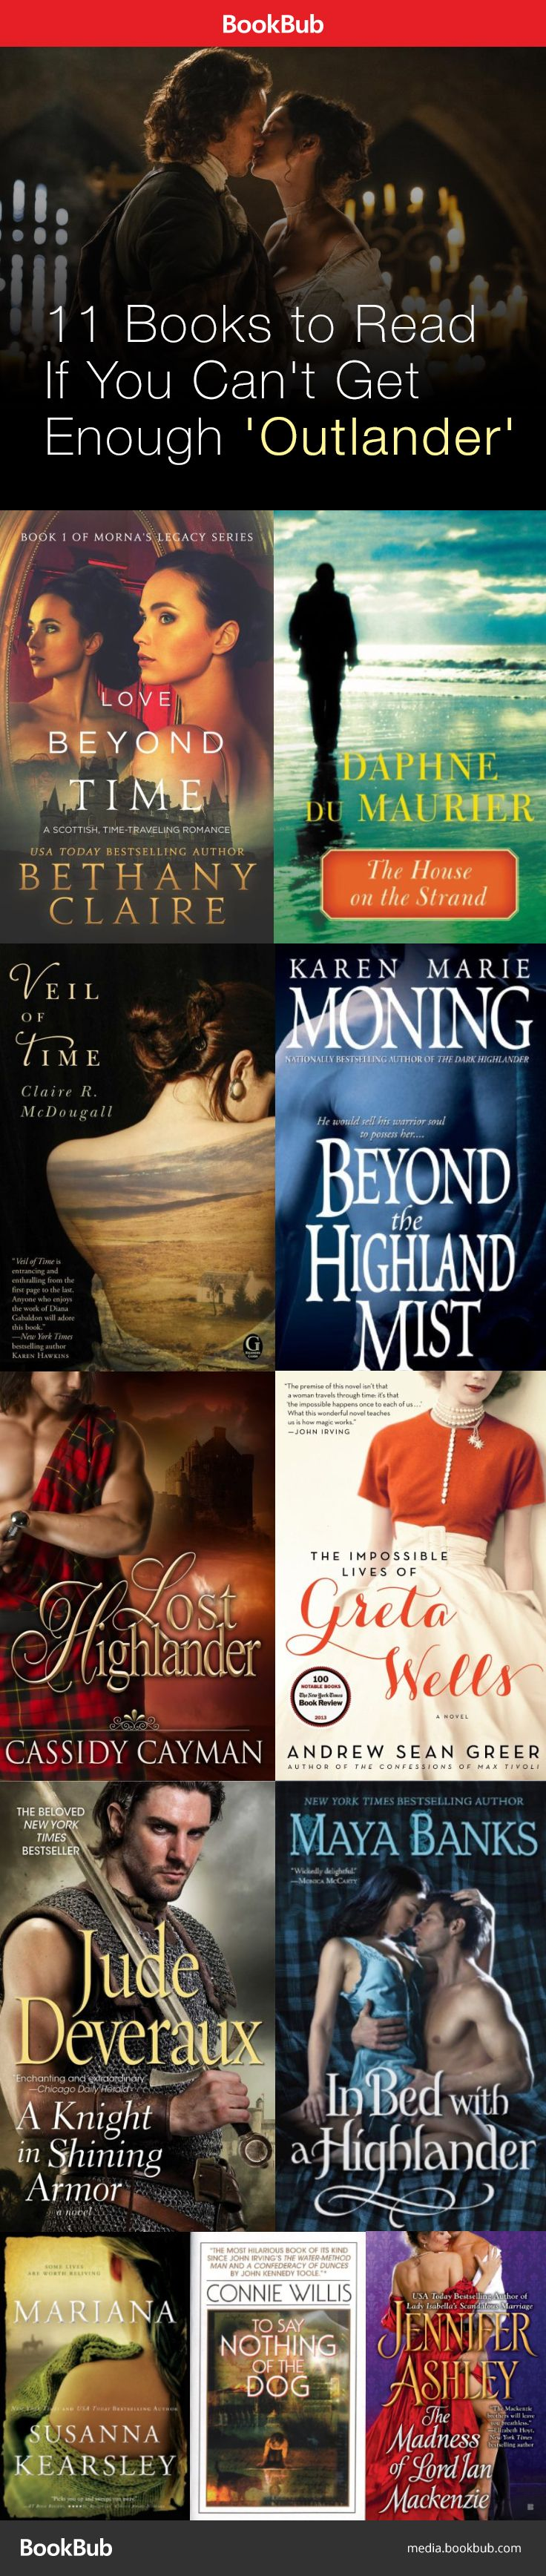 Books for Outlander fans to devour! Featuring time travel, strong heroines, and the Scottish higlands